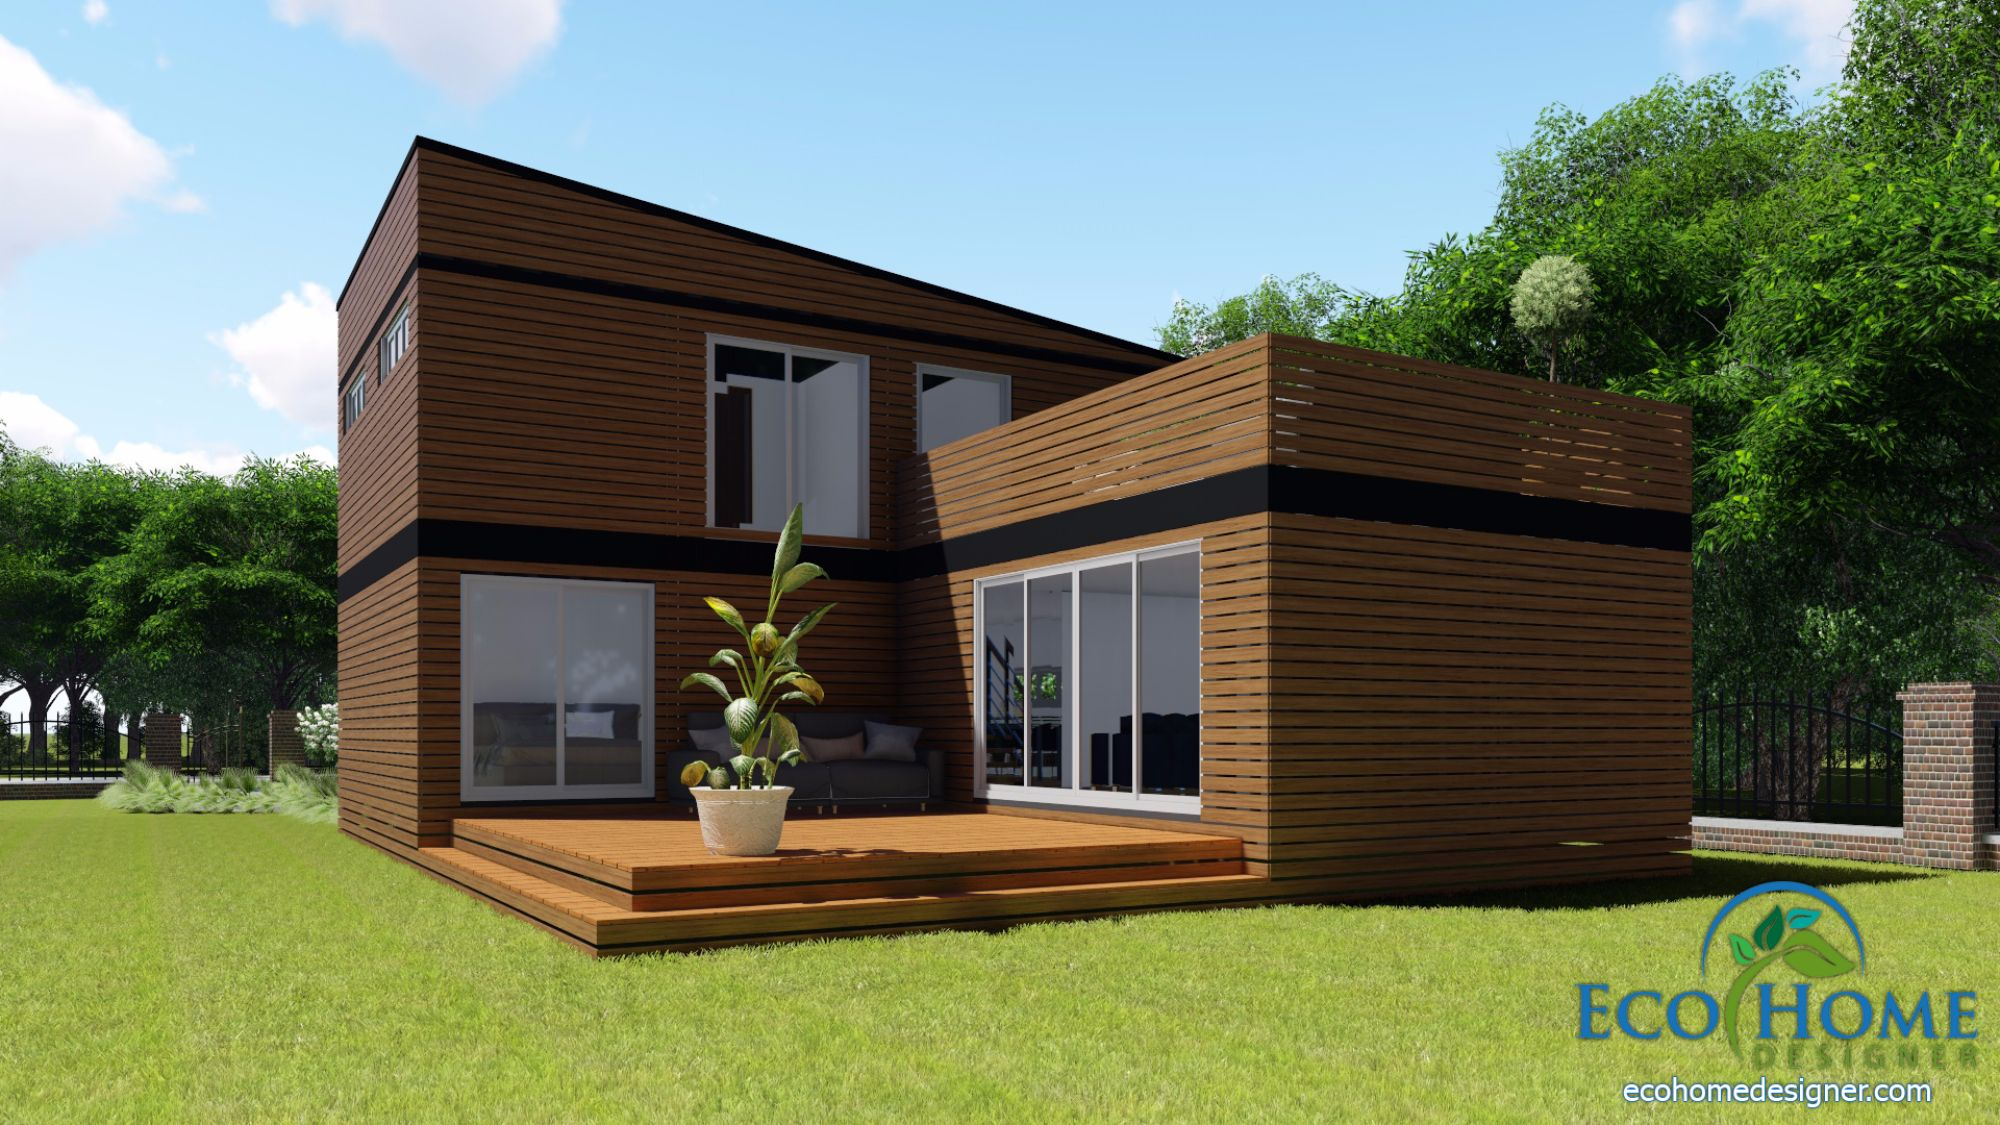 SCH17 10 x 20ft 2 Story Container Home Plans | Eco Home Designer